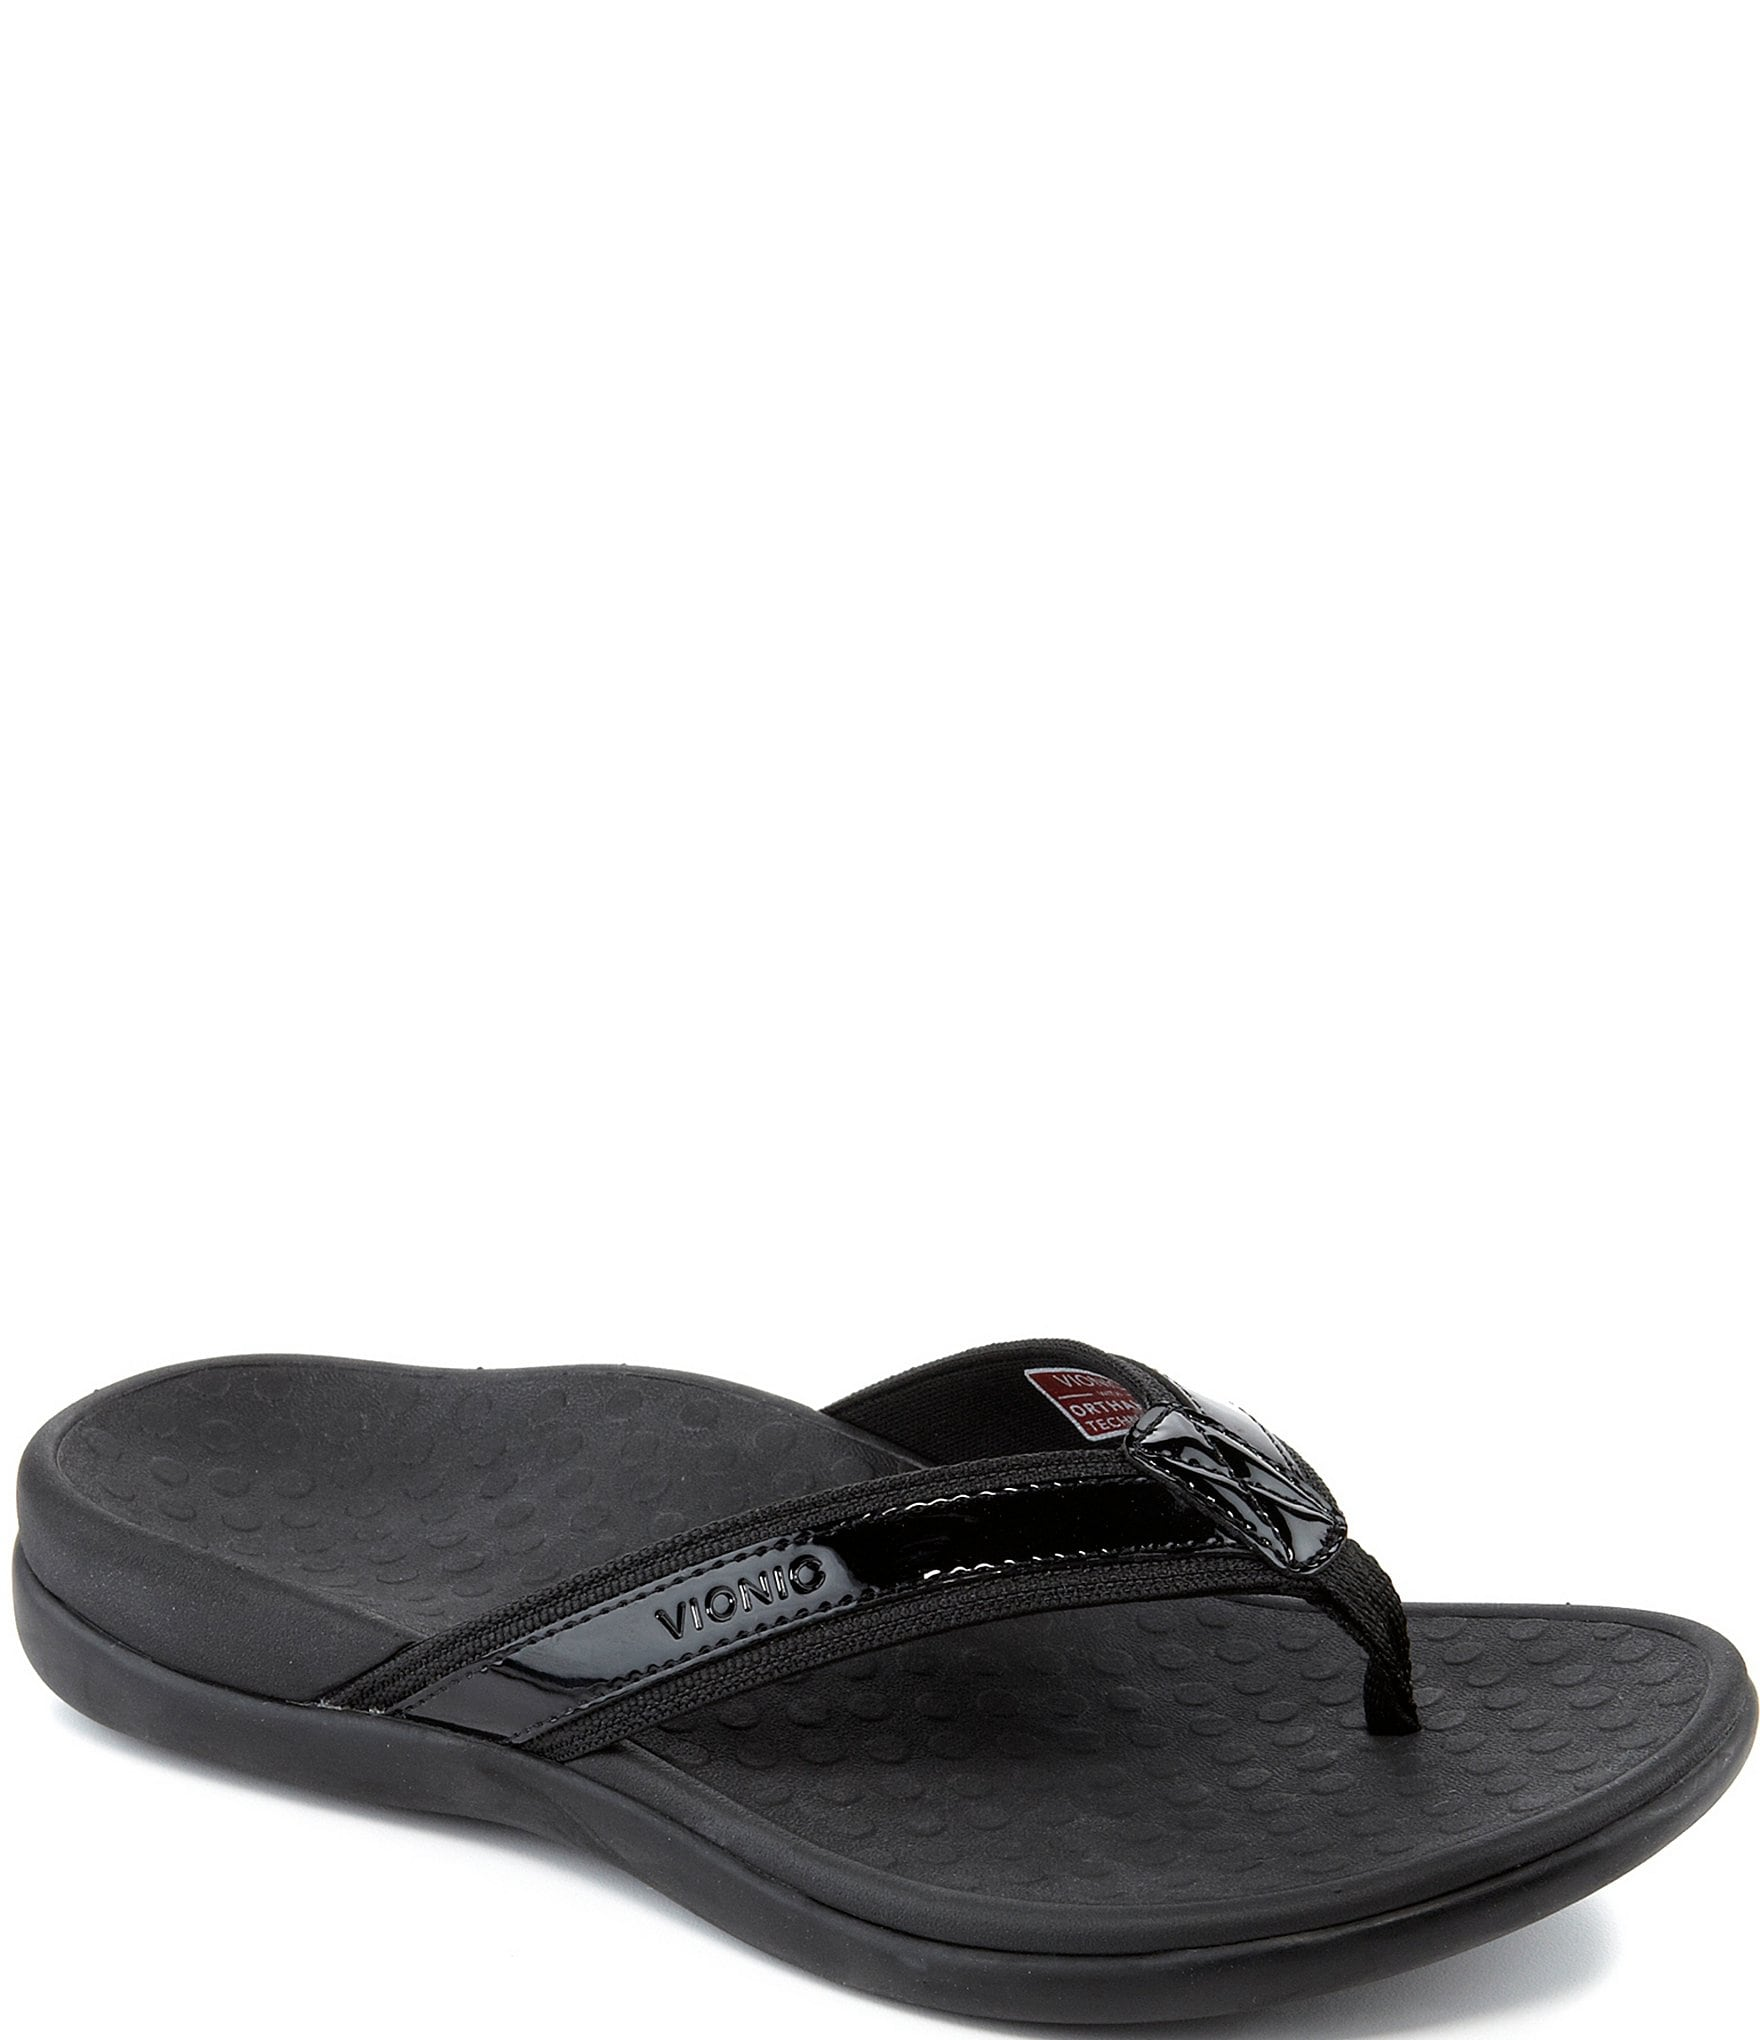 b96541d8c731 Vionic Tide II Leather Flip-Flops